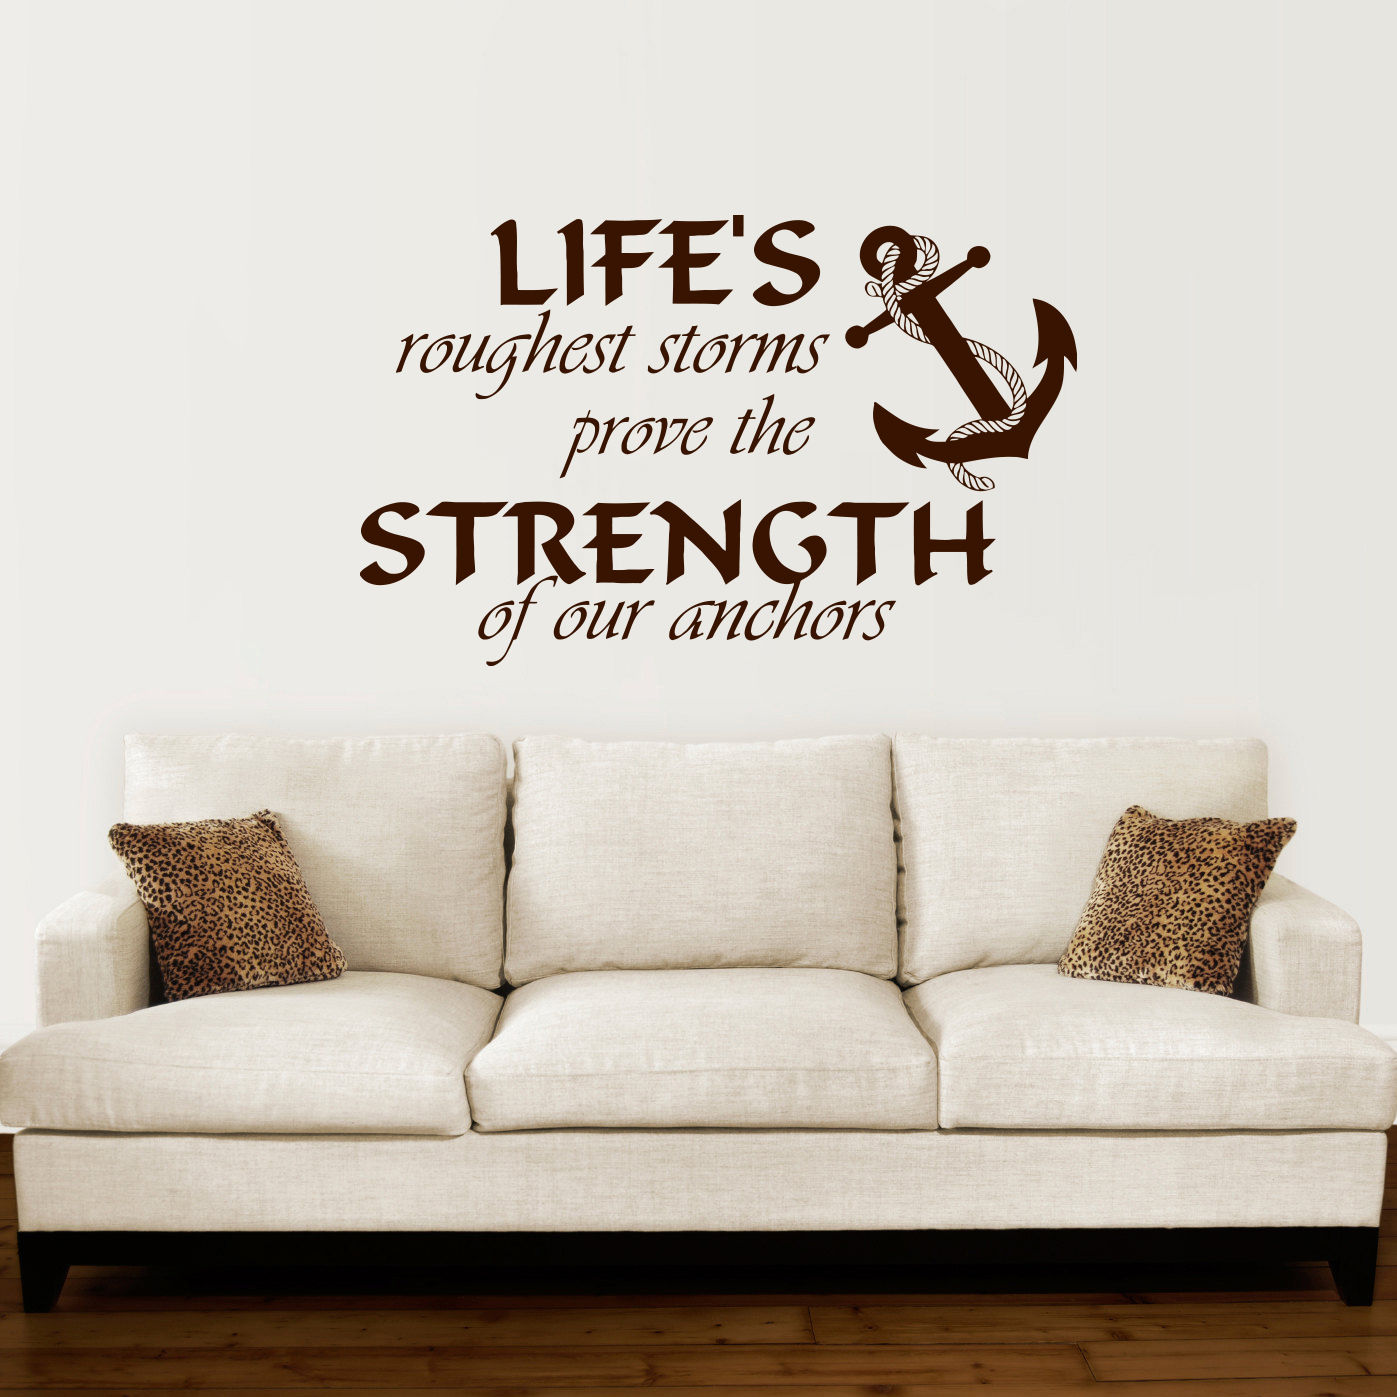 Anchor Wall Decal Quotes Nautical Sayings Wall Vinyl Sticker Bedroom Decor DIY Self adhesive